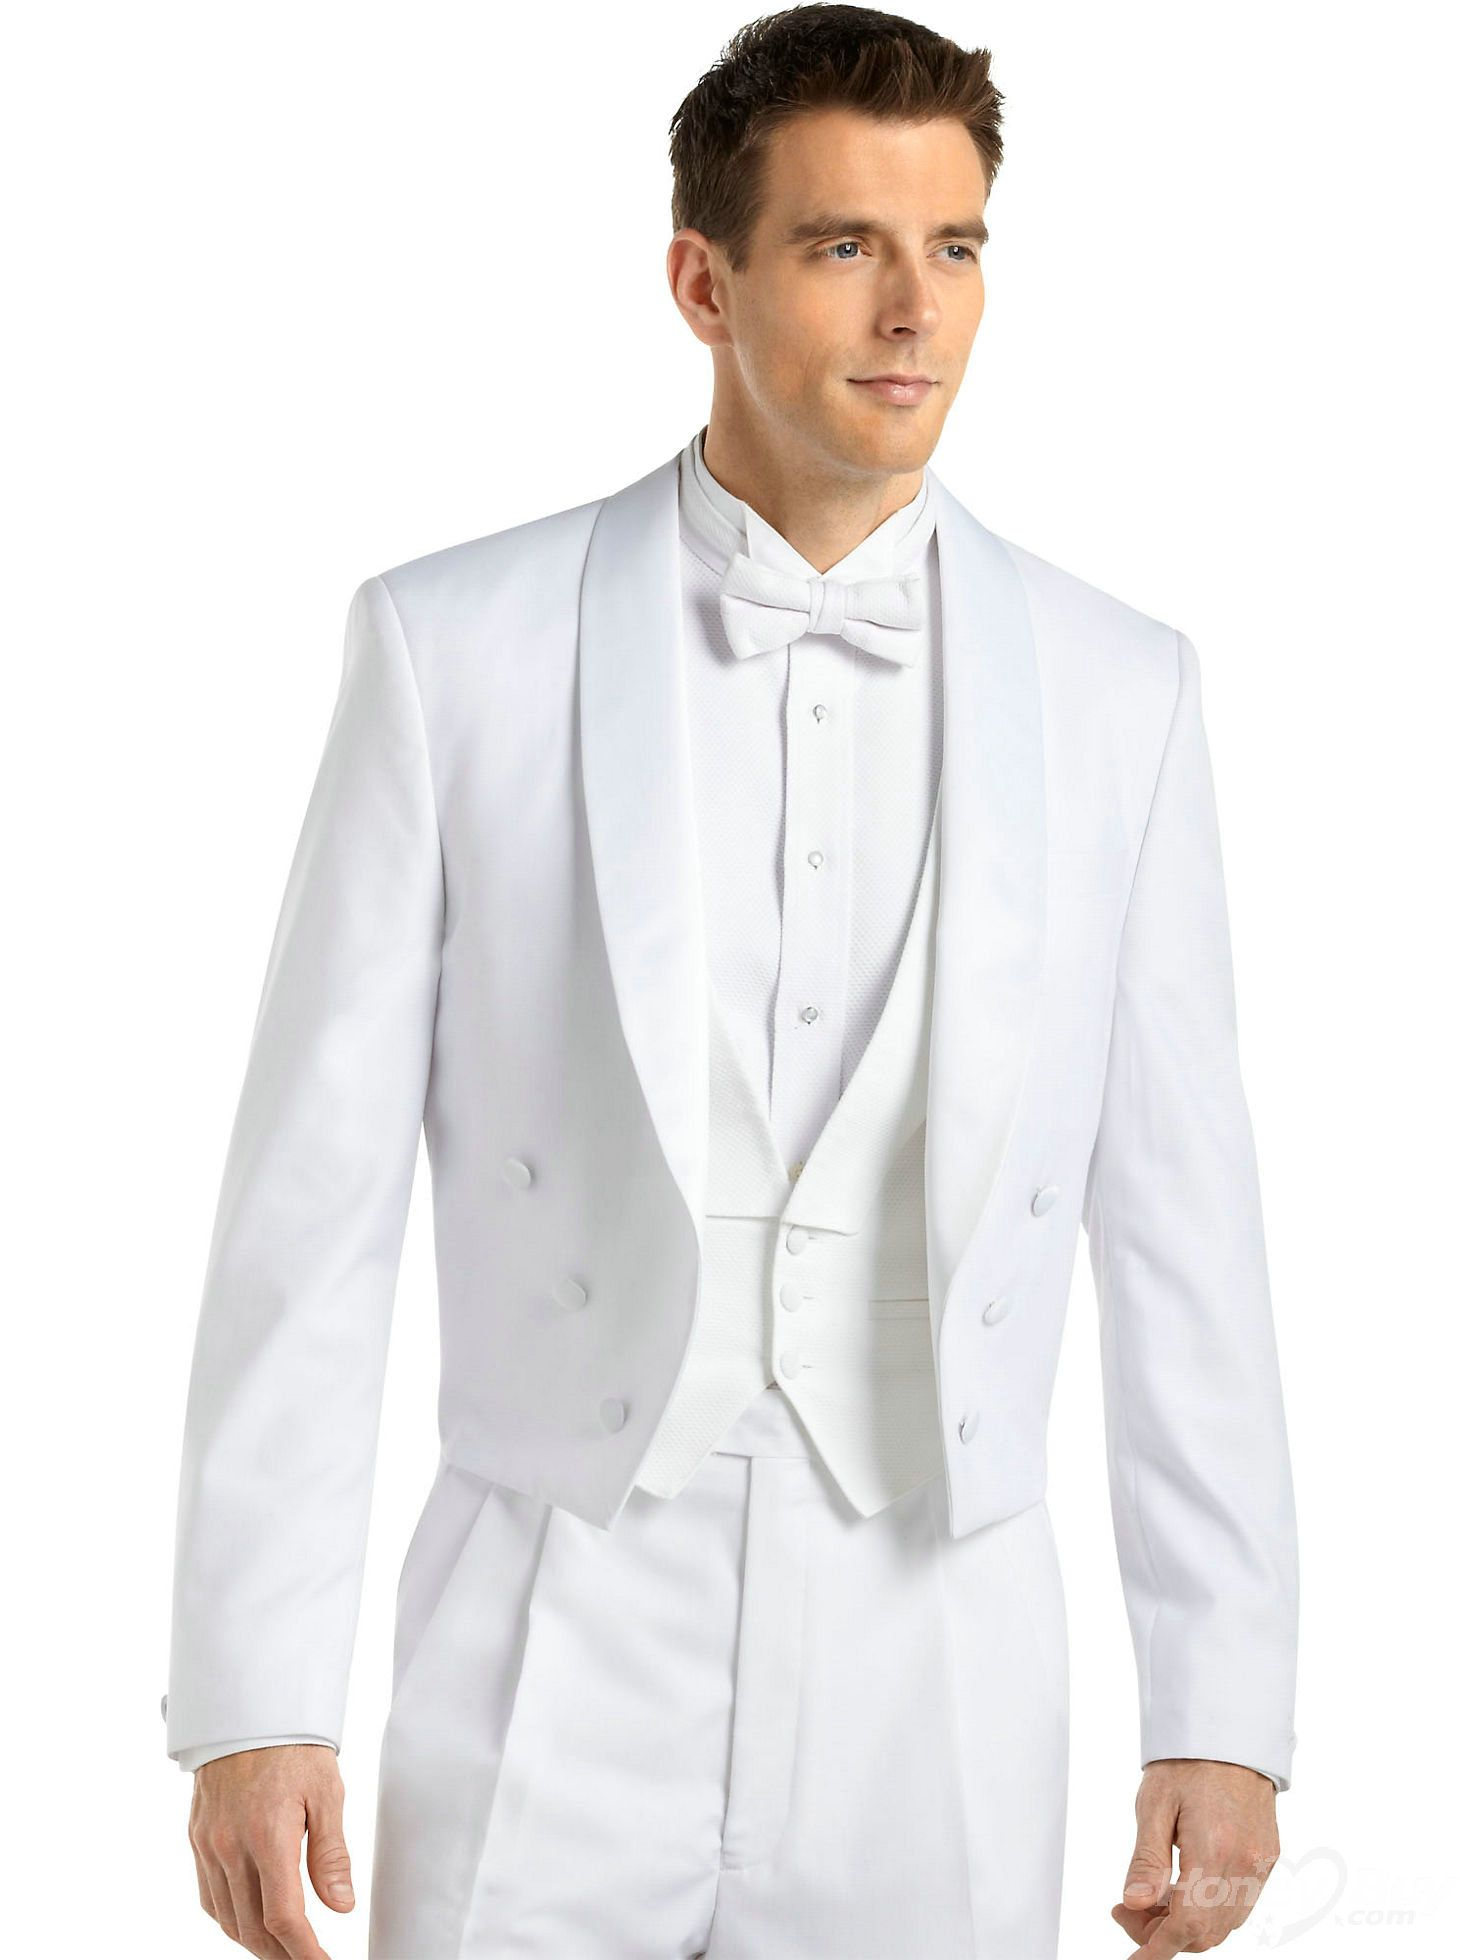 White Suits for Men 2014 - Light Tuxedo for Boys 2015 | CHESTI DE ...